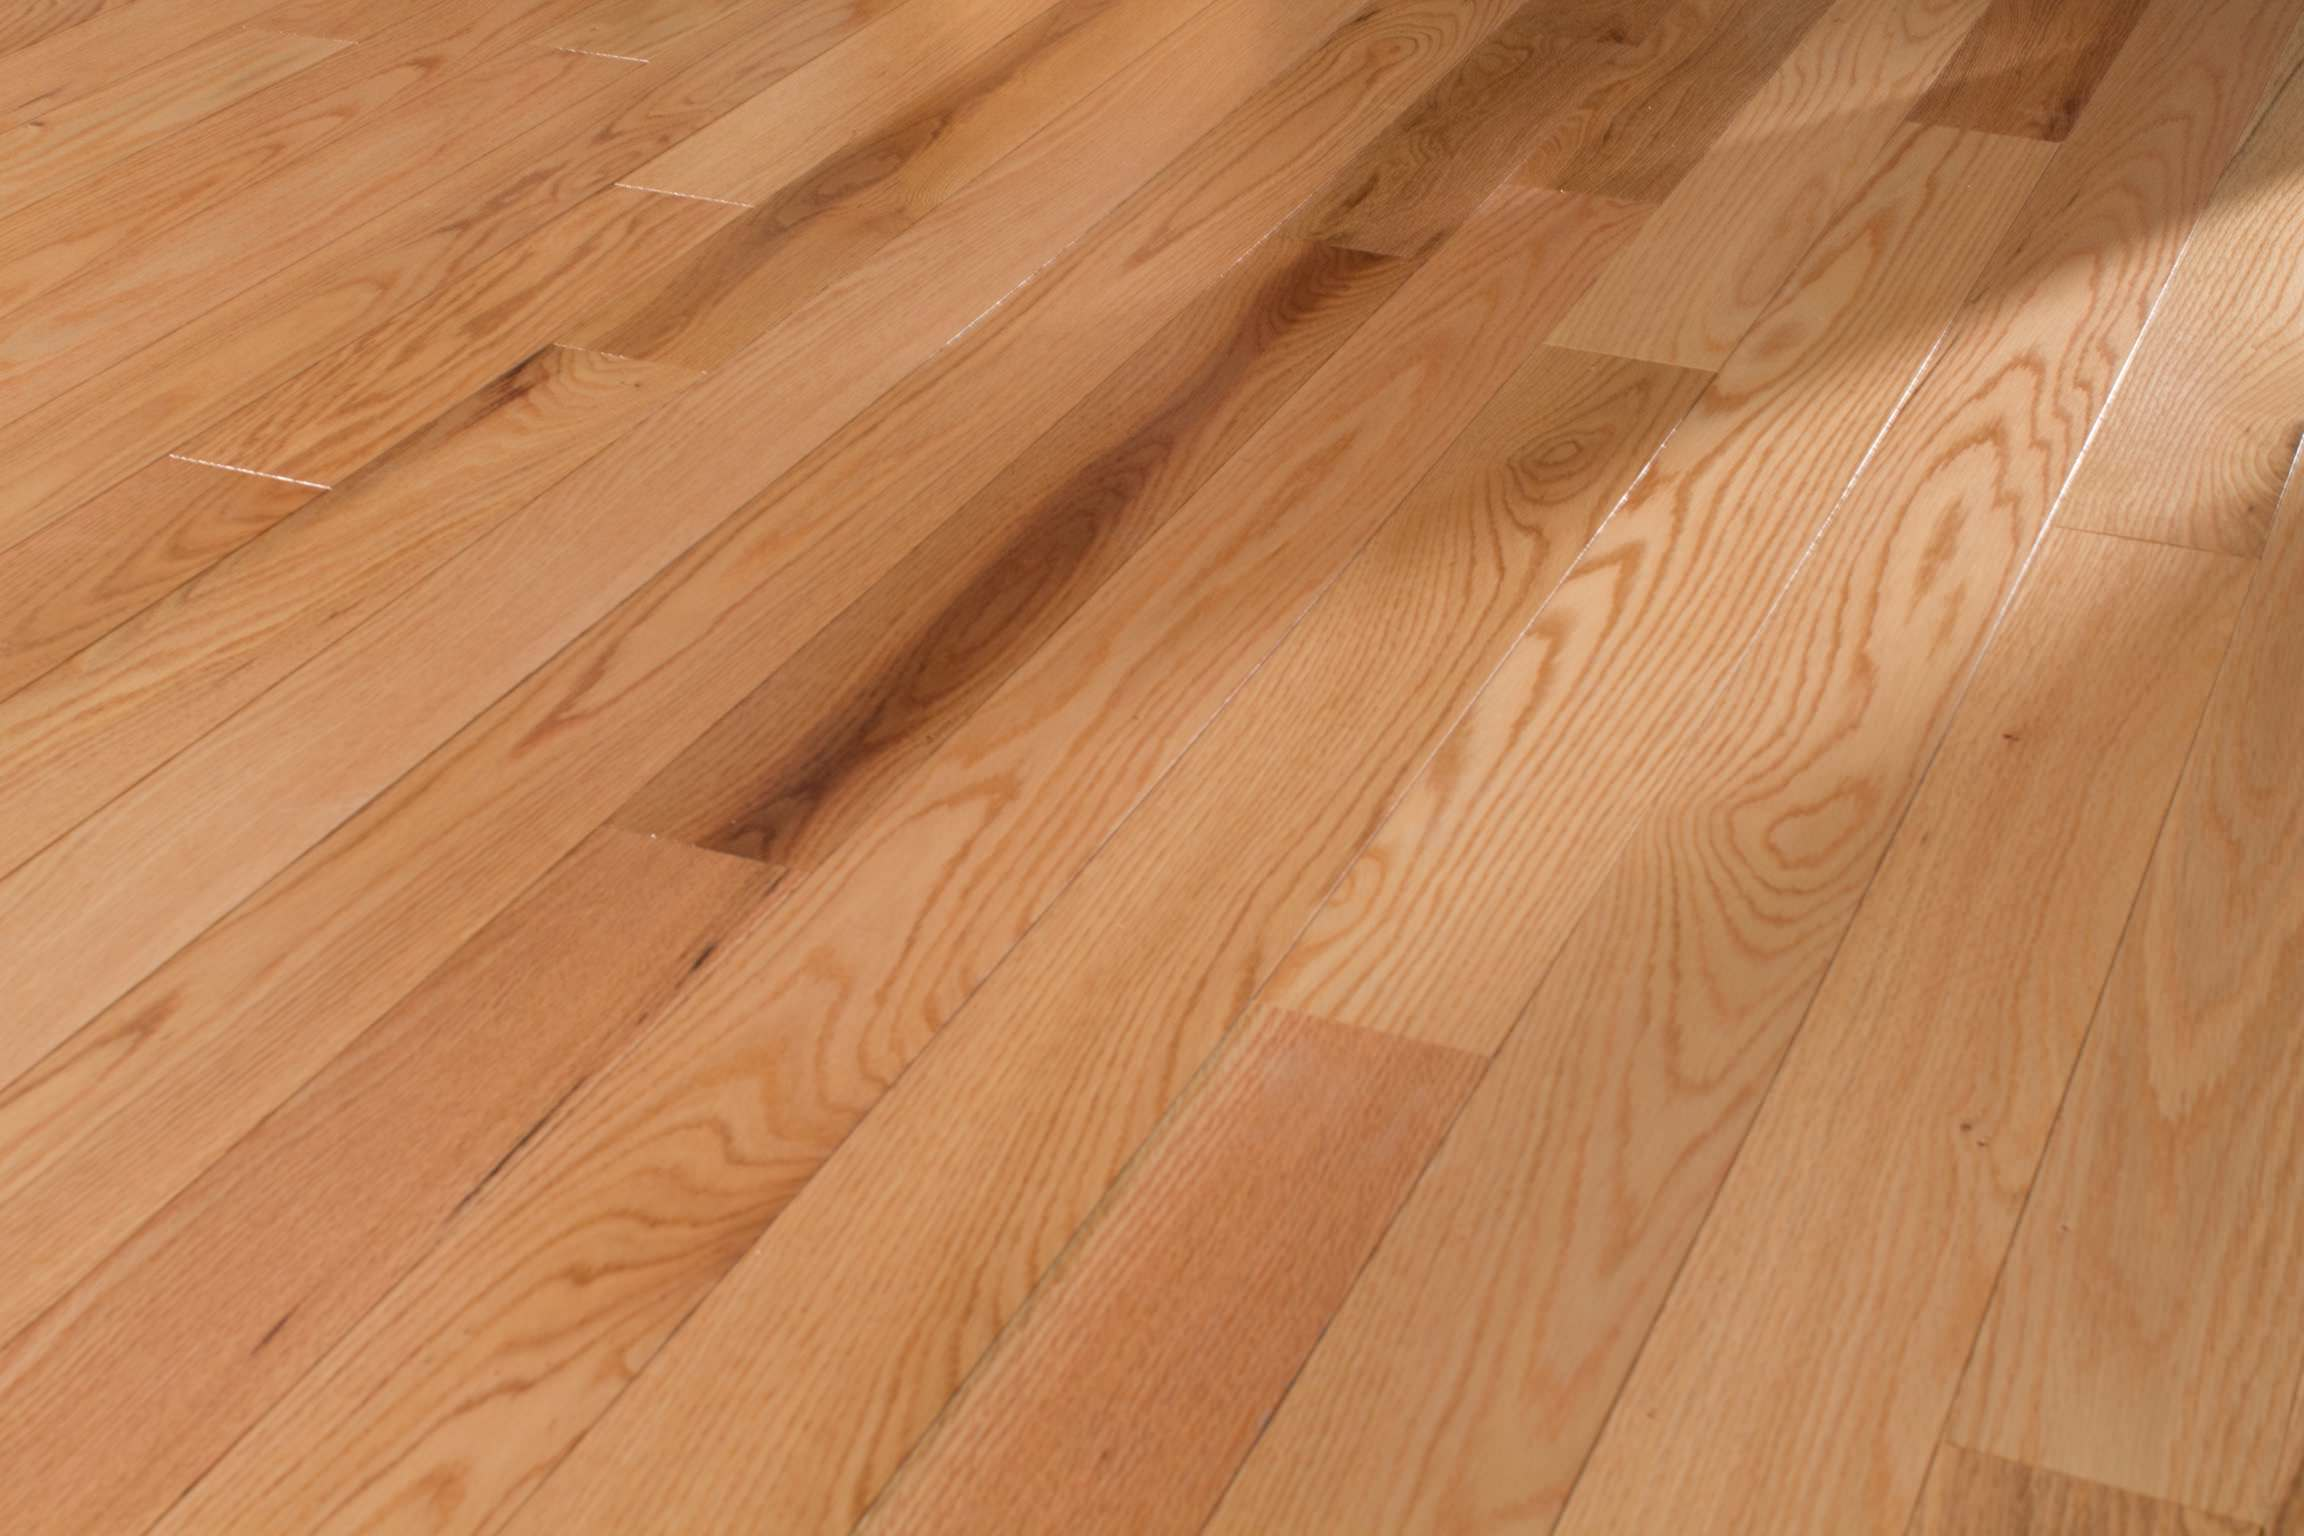 The Most Useful And Entertaining Domestic Hardwood Flooring Guide On